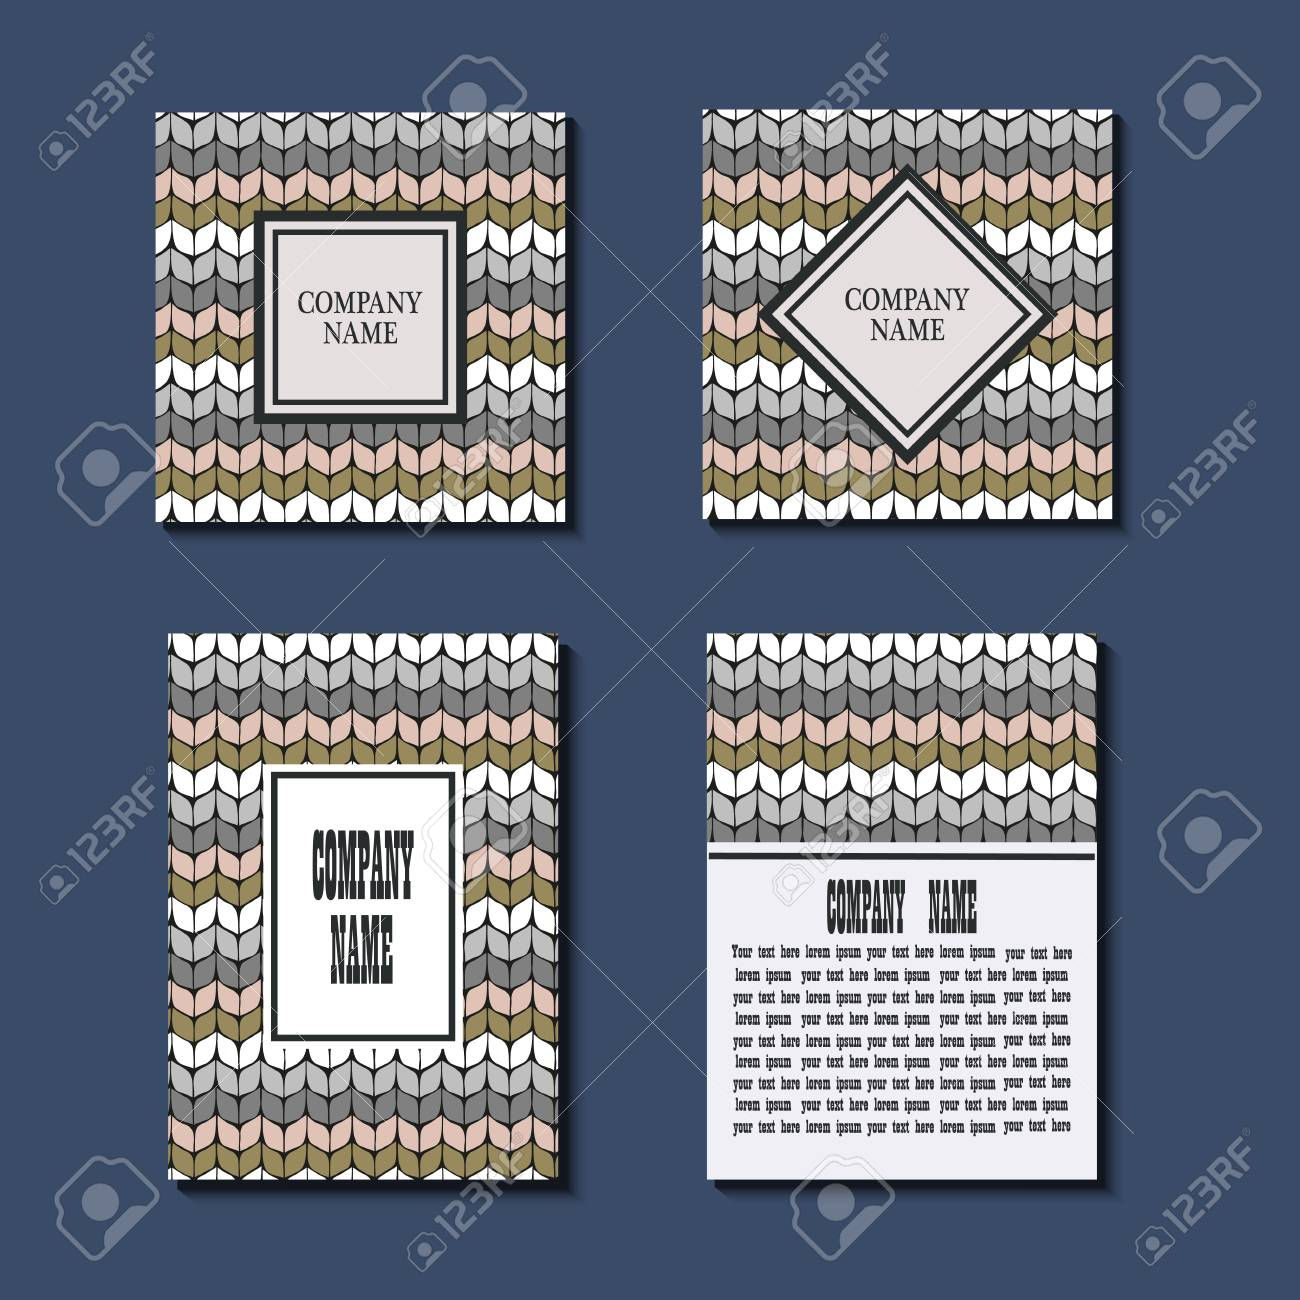 flyer template with knitting pattern greeting card design front